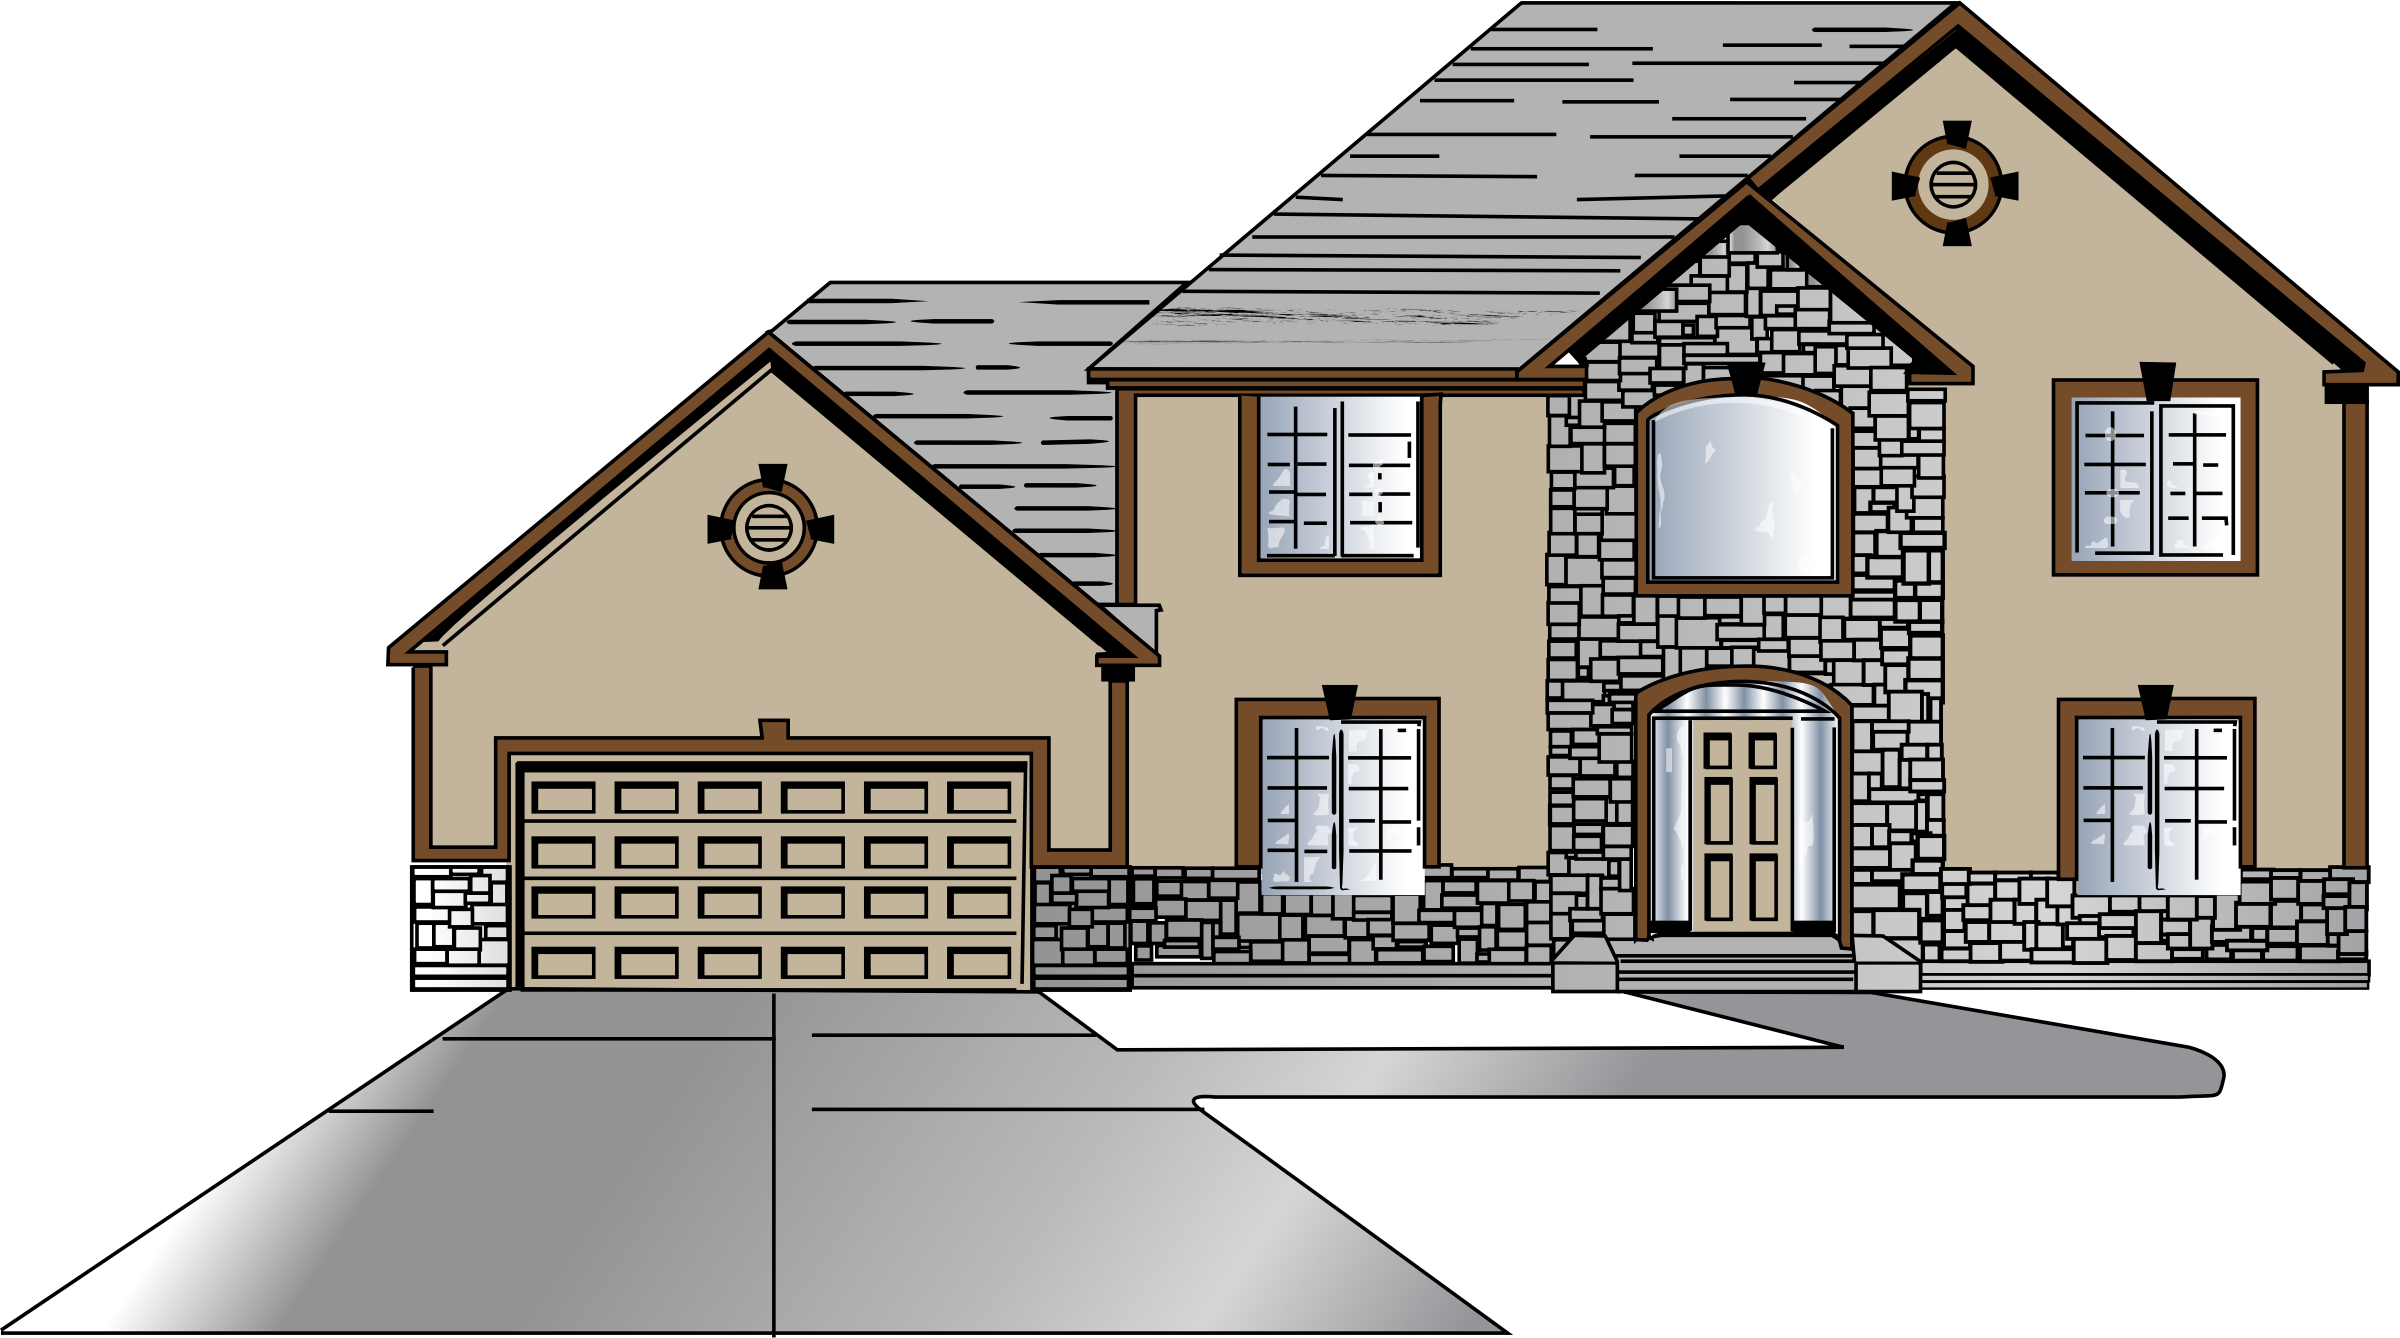 House Design Clipart - Clipart Kid